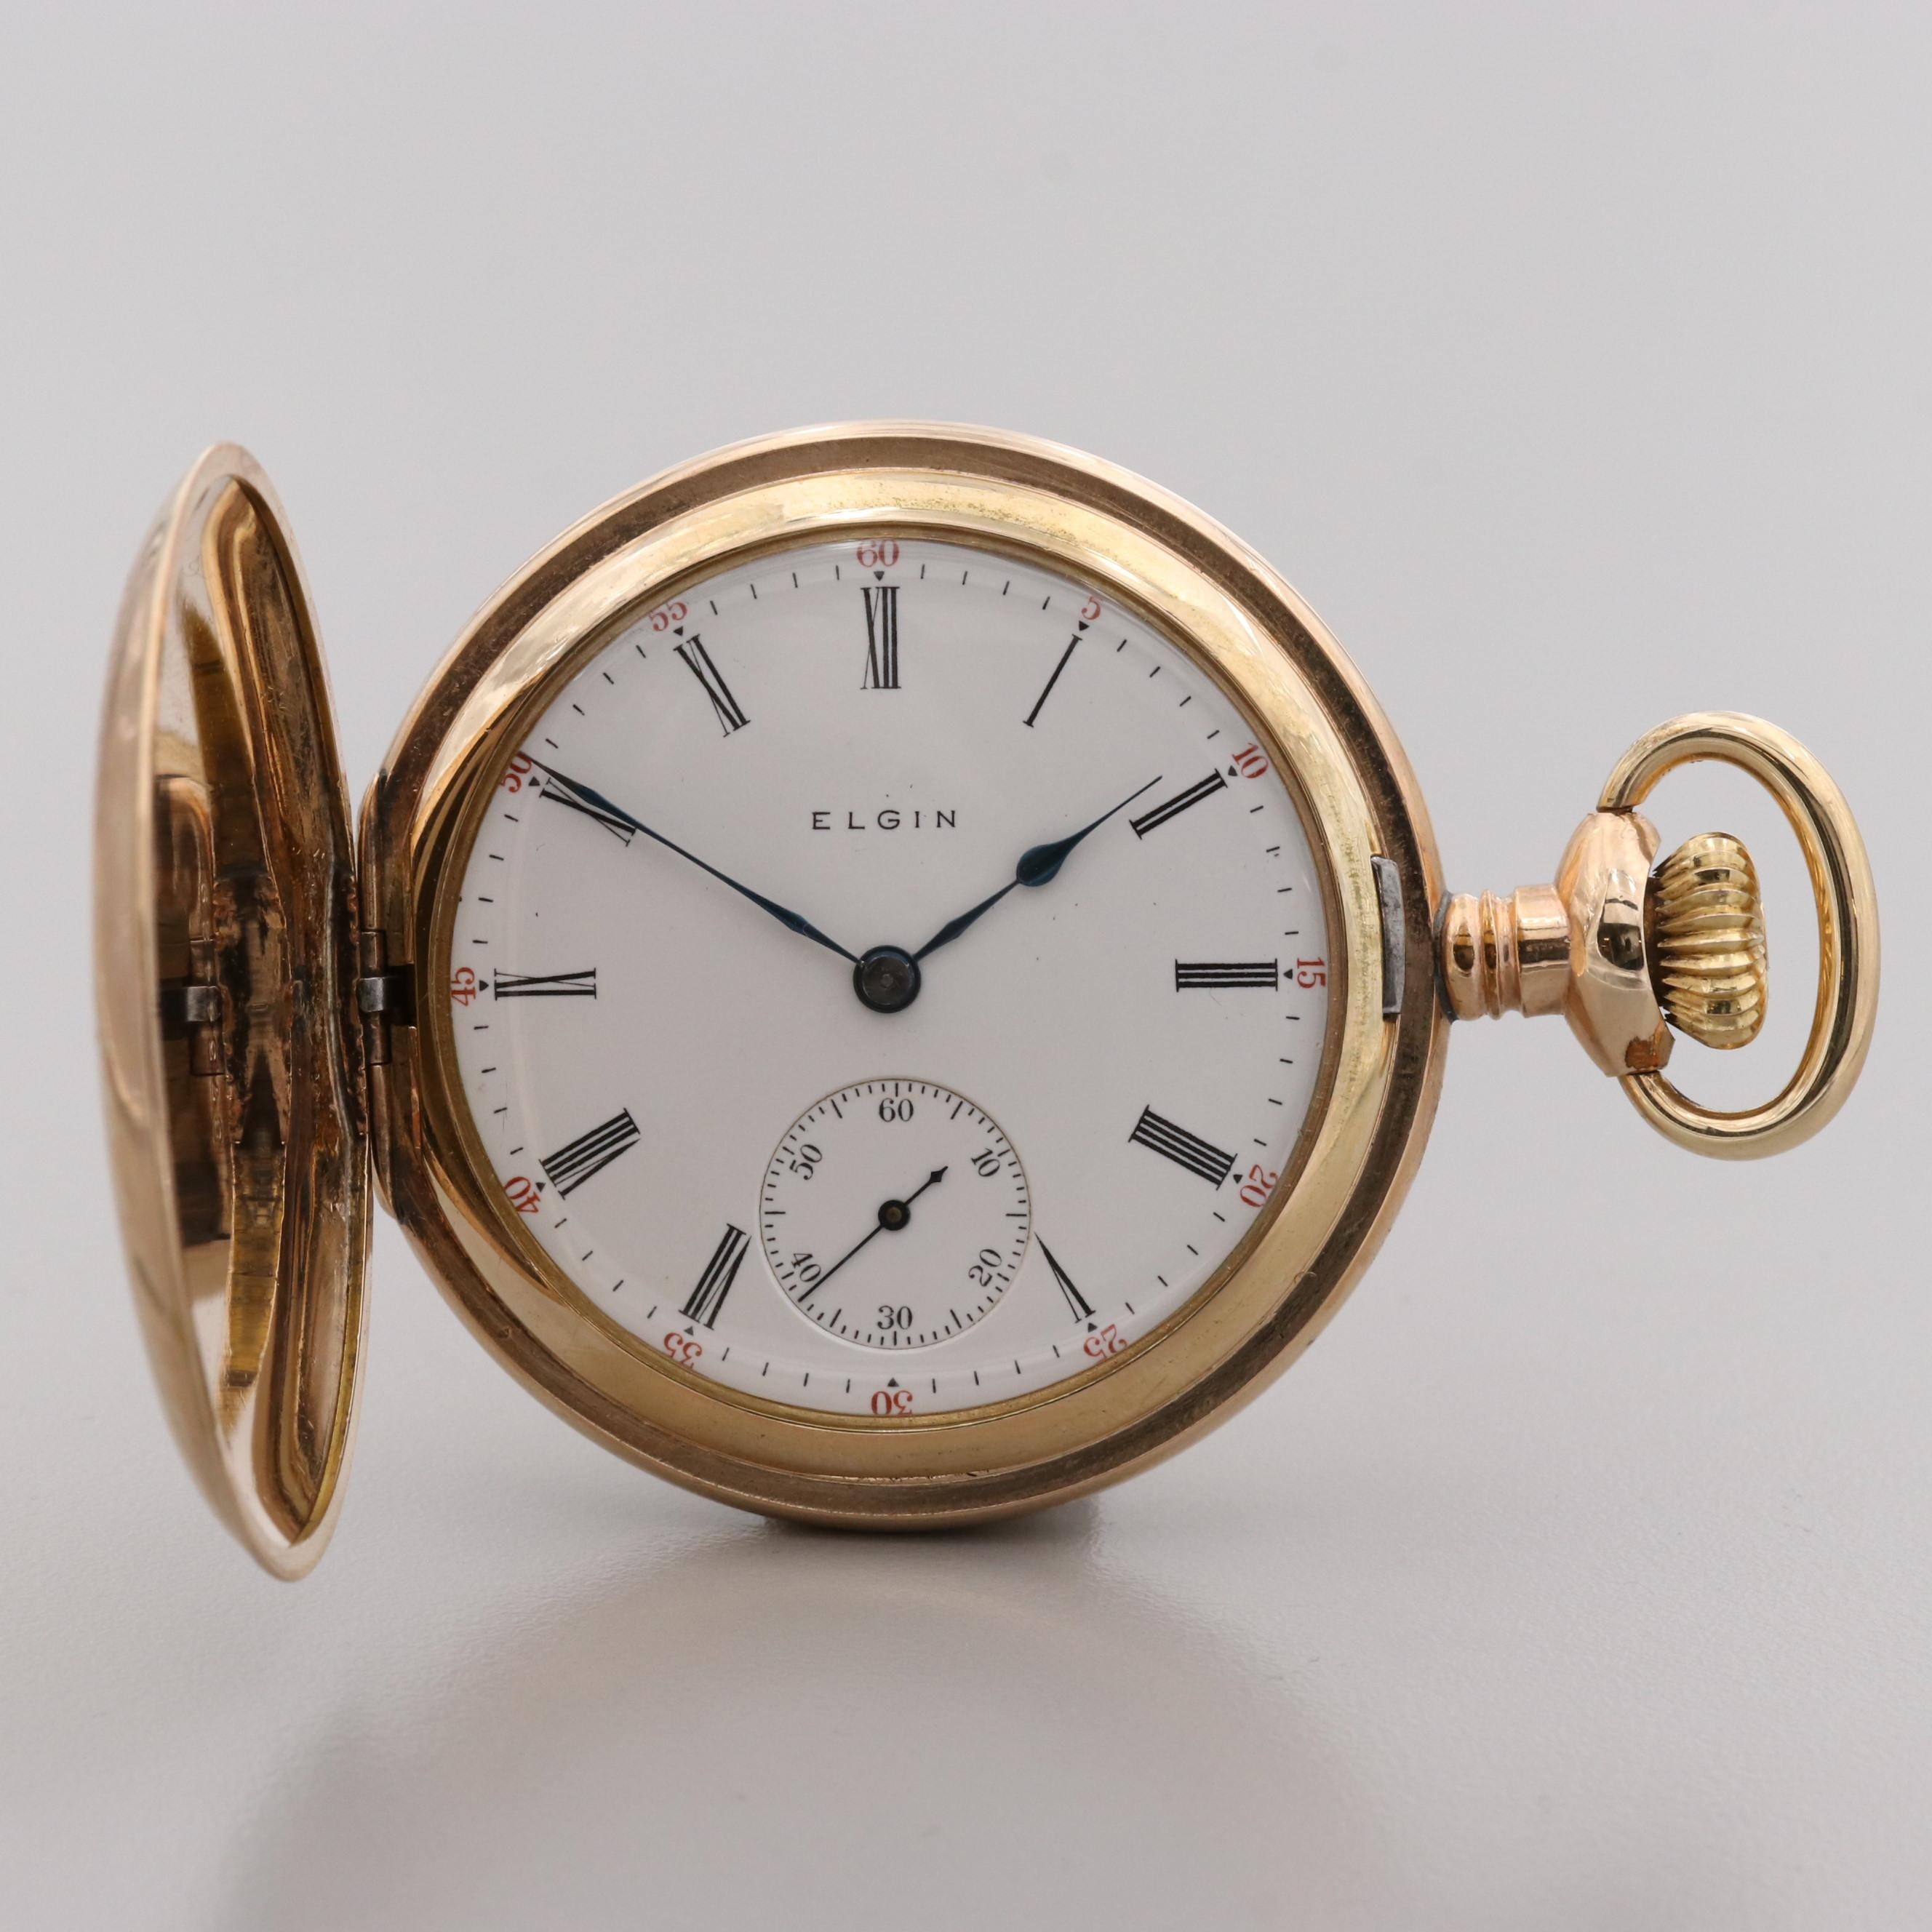 Elgin Gold Filled Pocket Watch, 1910